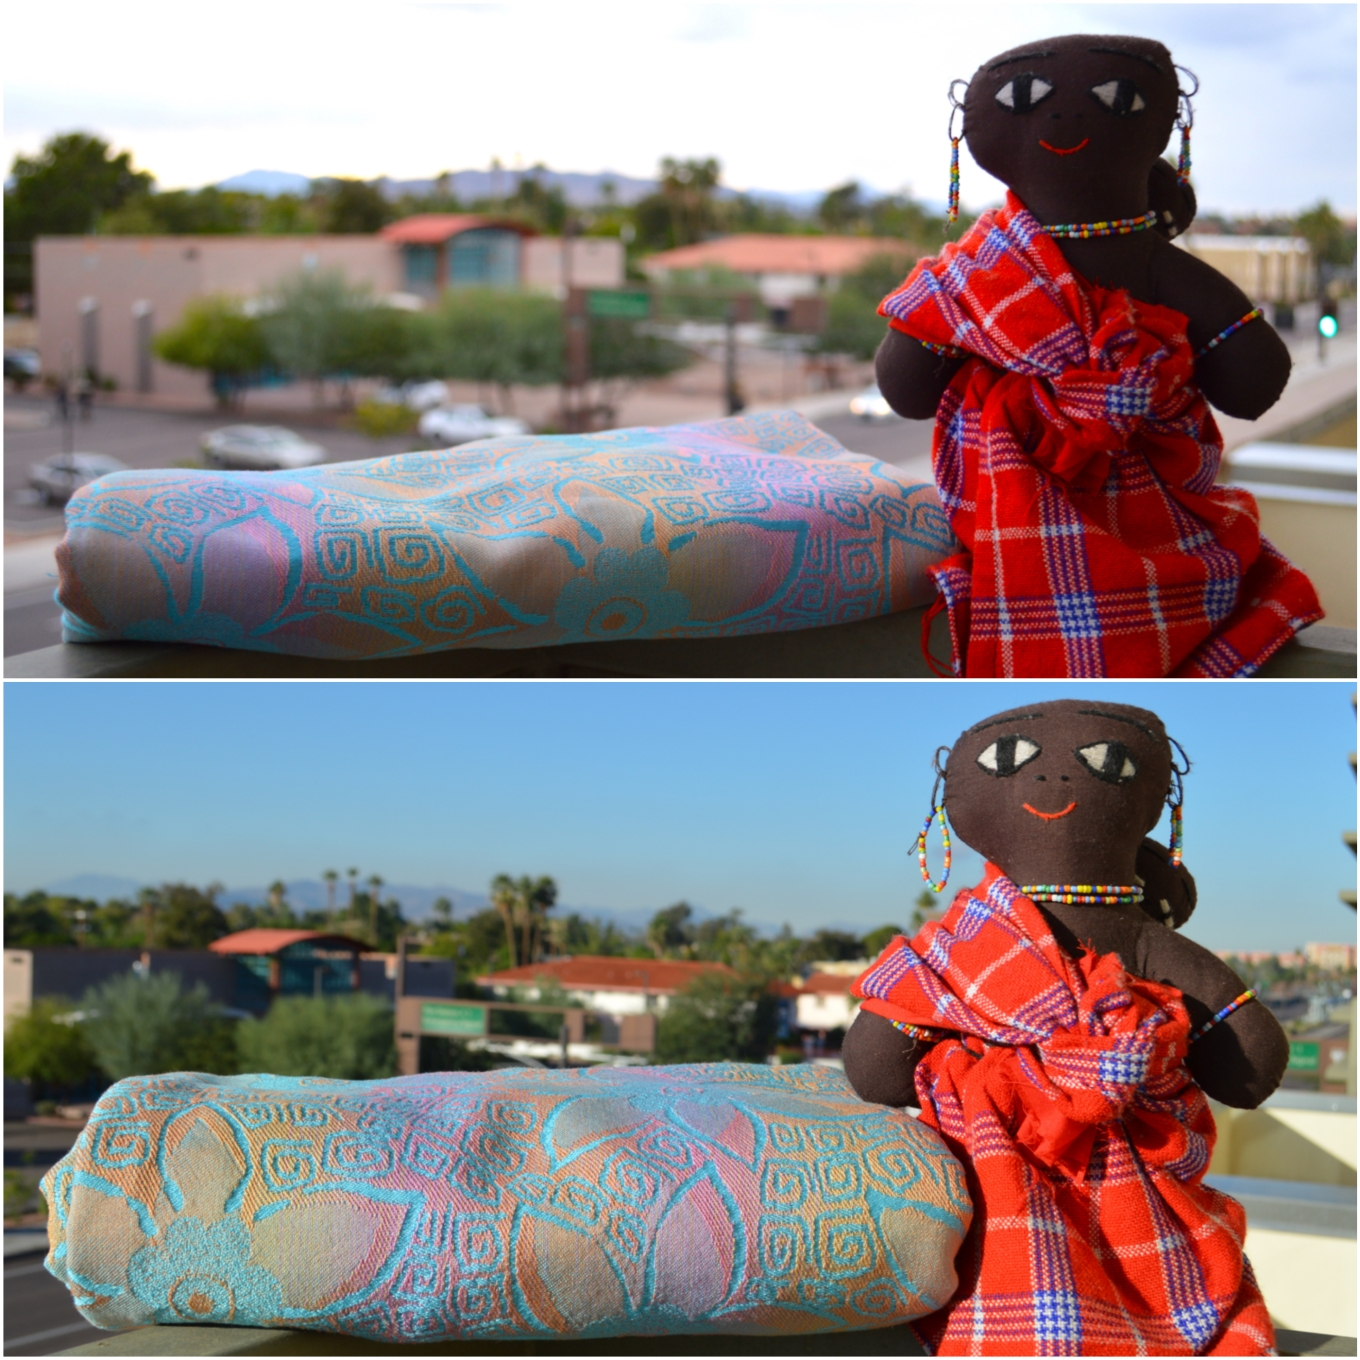 Before and after images of loom state on top and post wash on the bottom. The top image shows the wrap folded and is halfway up the doll's legs. The lower image shows the wrap folded the same way and is now fluffed up to under the doll's arm. The wrap in the lower image is three times the thickness of the wrap in the top image. Babywearing doll stands next to the folded wrap on the right for comparison. The doll is Masai Momma by Toto Wraps and wears red and blue striped plaid Masai flannel dress and beaded necklace with beaded earrings. The doll wears her baby on her back in a wrap the same color.